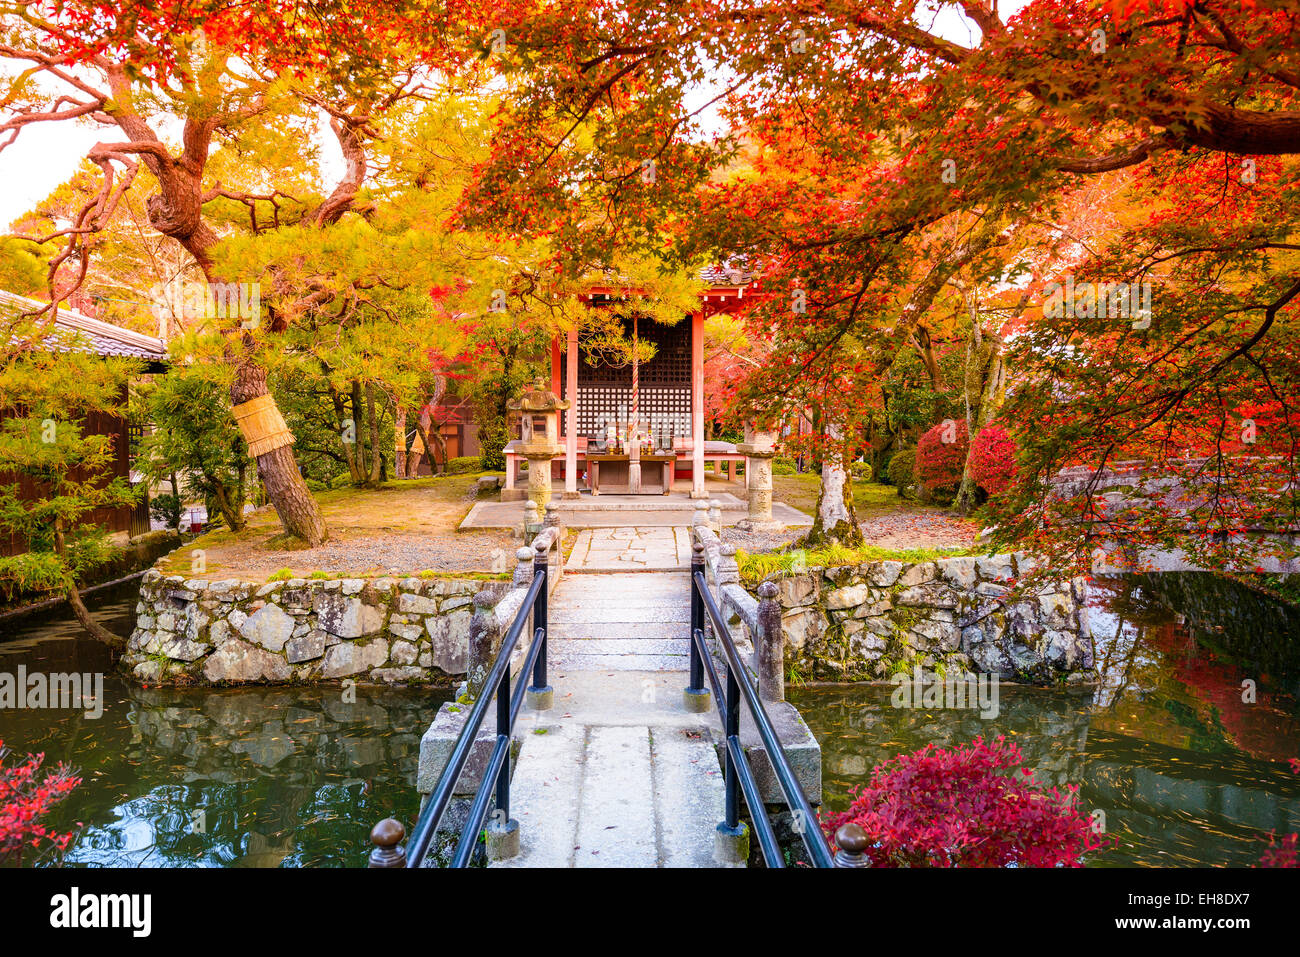 Fall foliage in Kyoto, Japan. - Stock Image